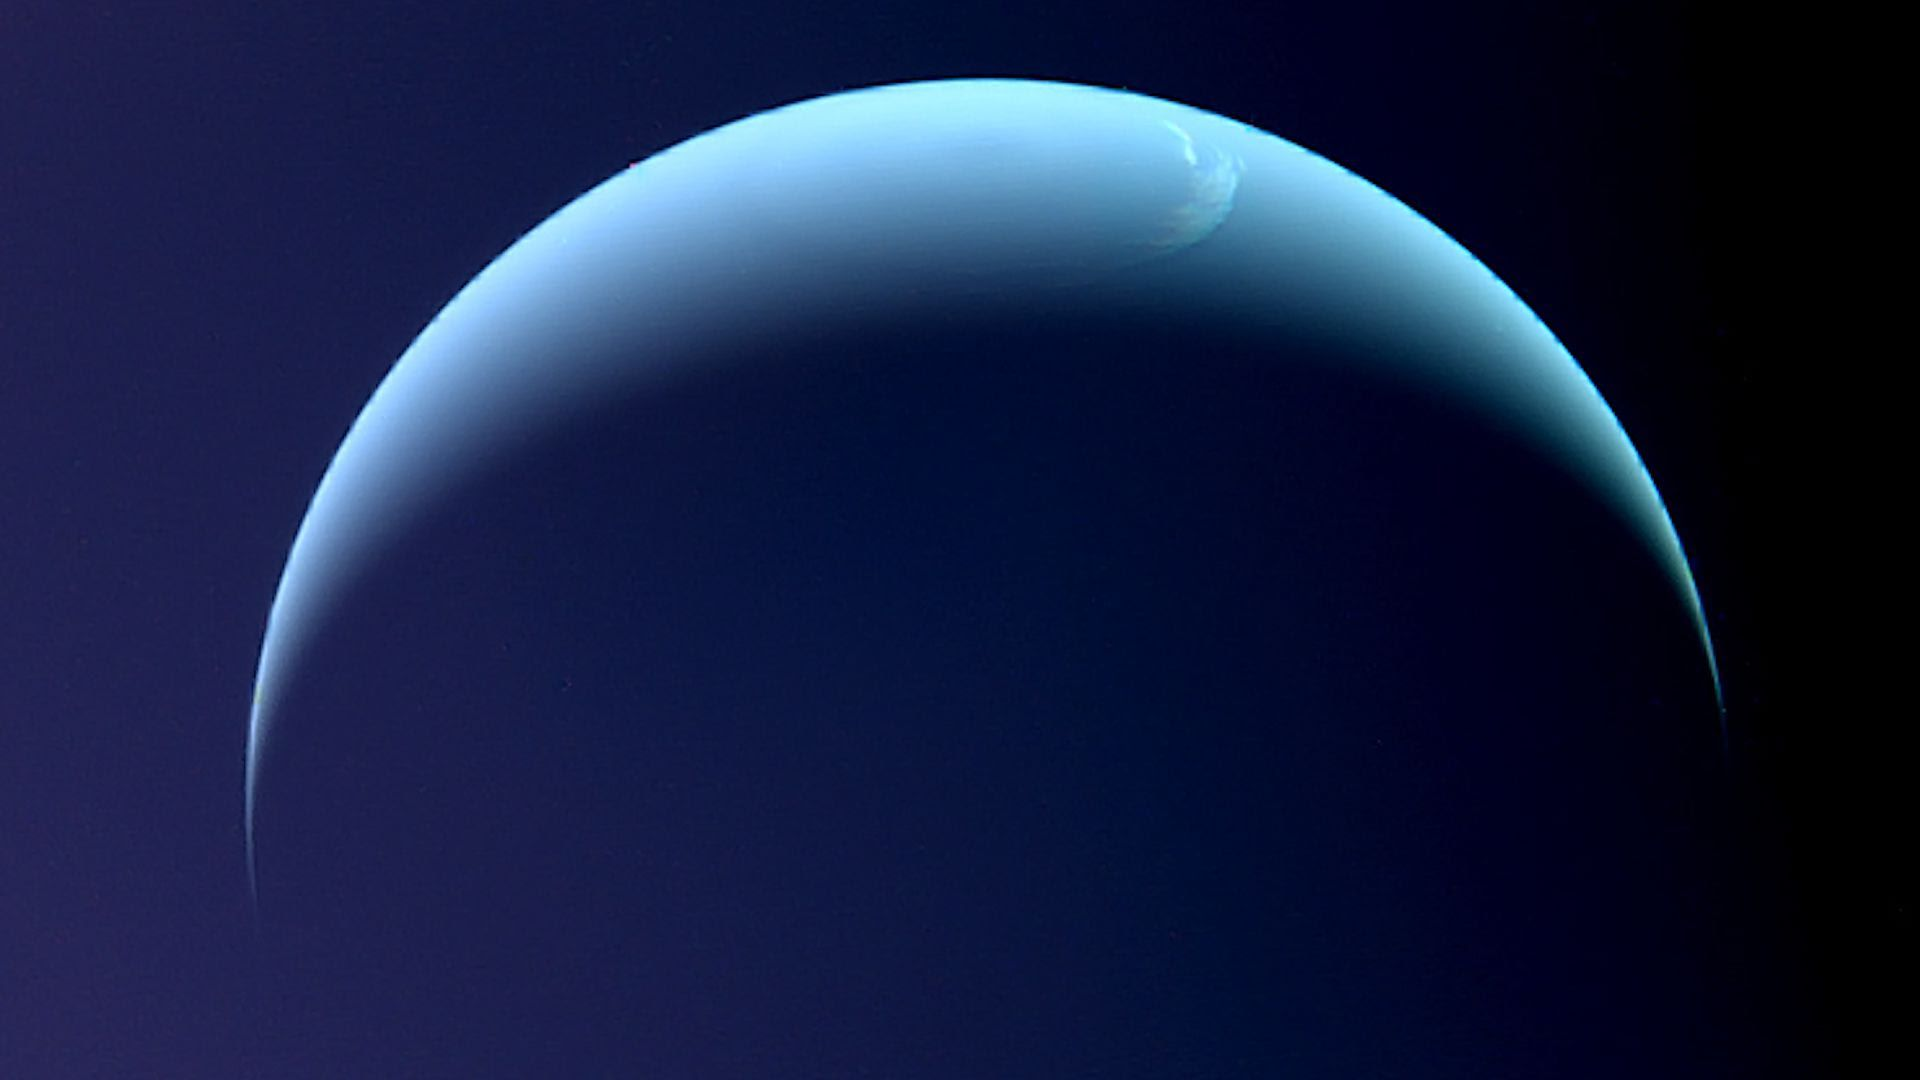 Neptune seen by Voyager 2 in 1989. Photo: NASA/JPL-Caltech/Kevin M. Gill